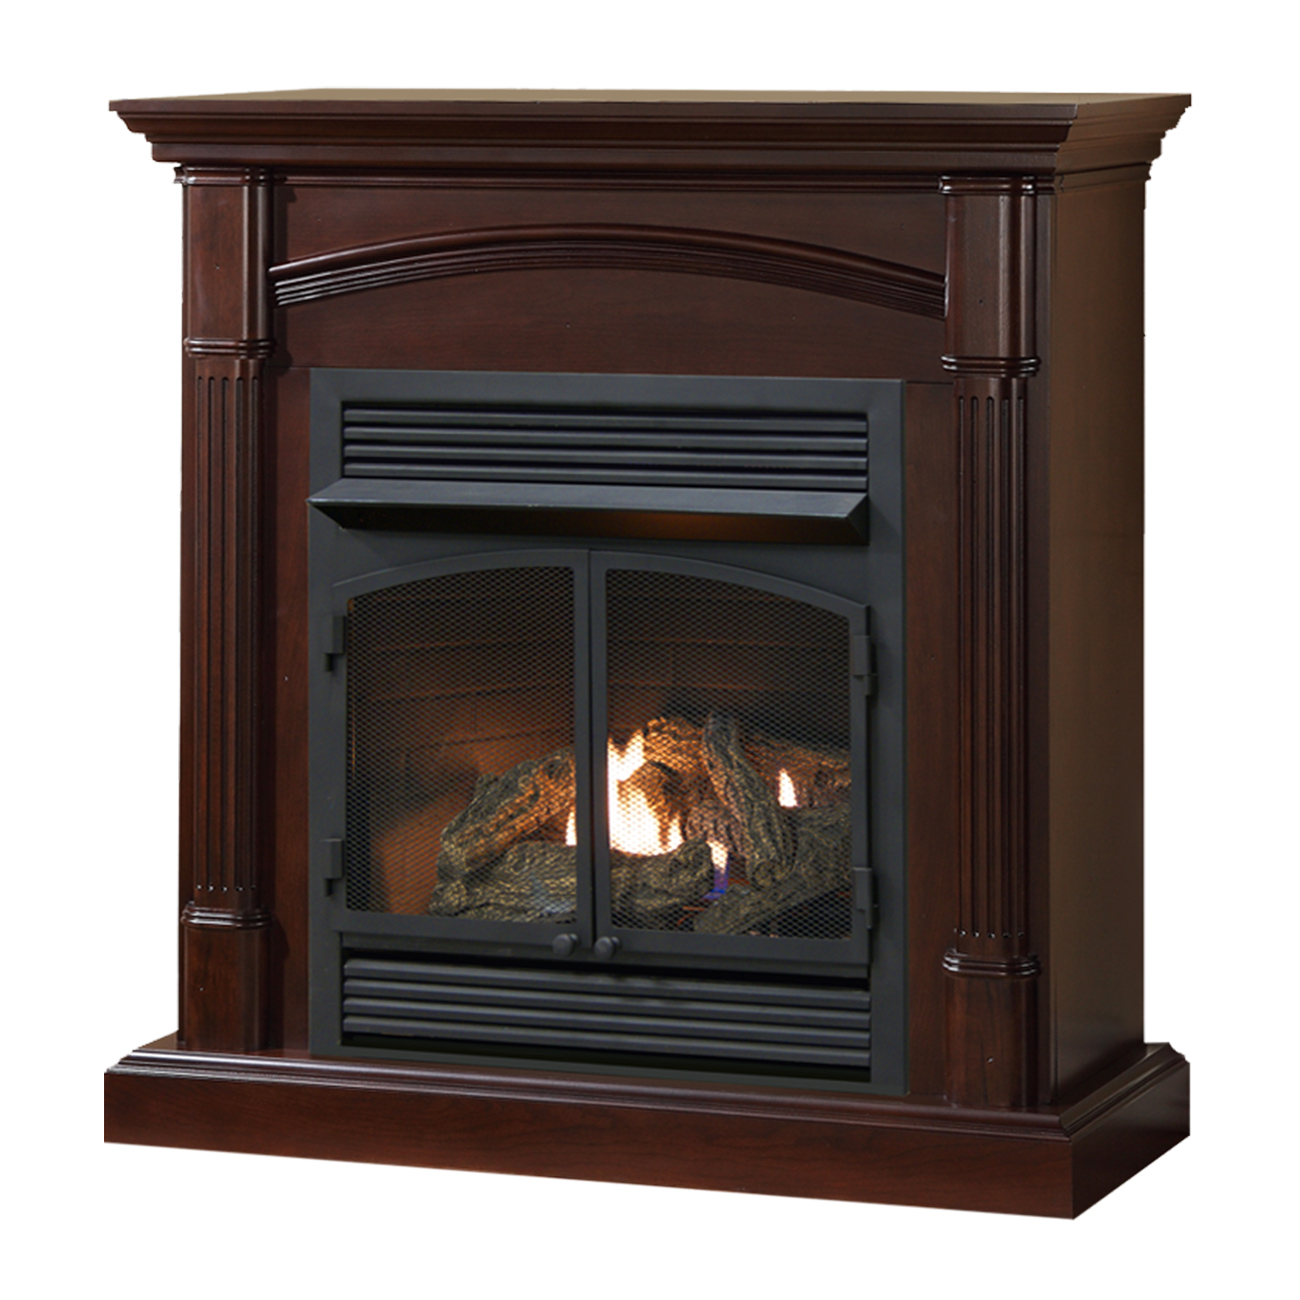 Ventless Fireplace: Ventless Fireplace System Warm Clove Finish 32,000 BTU